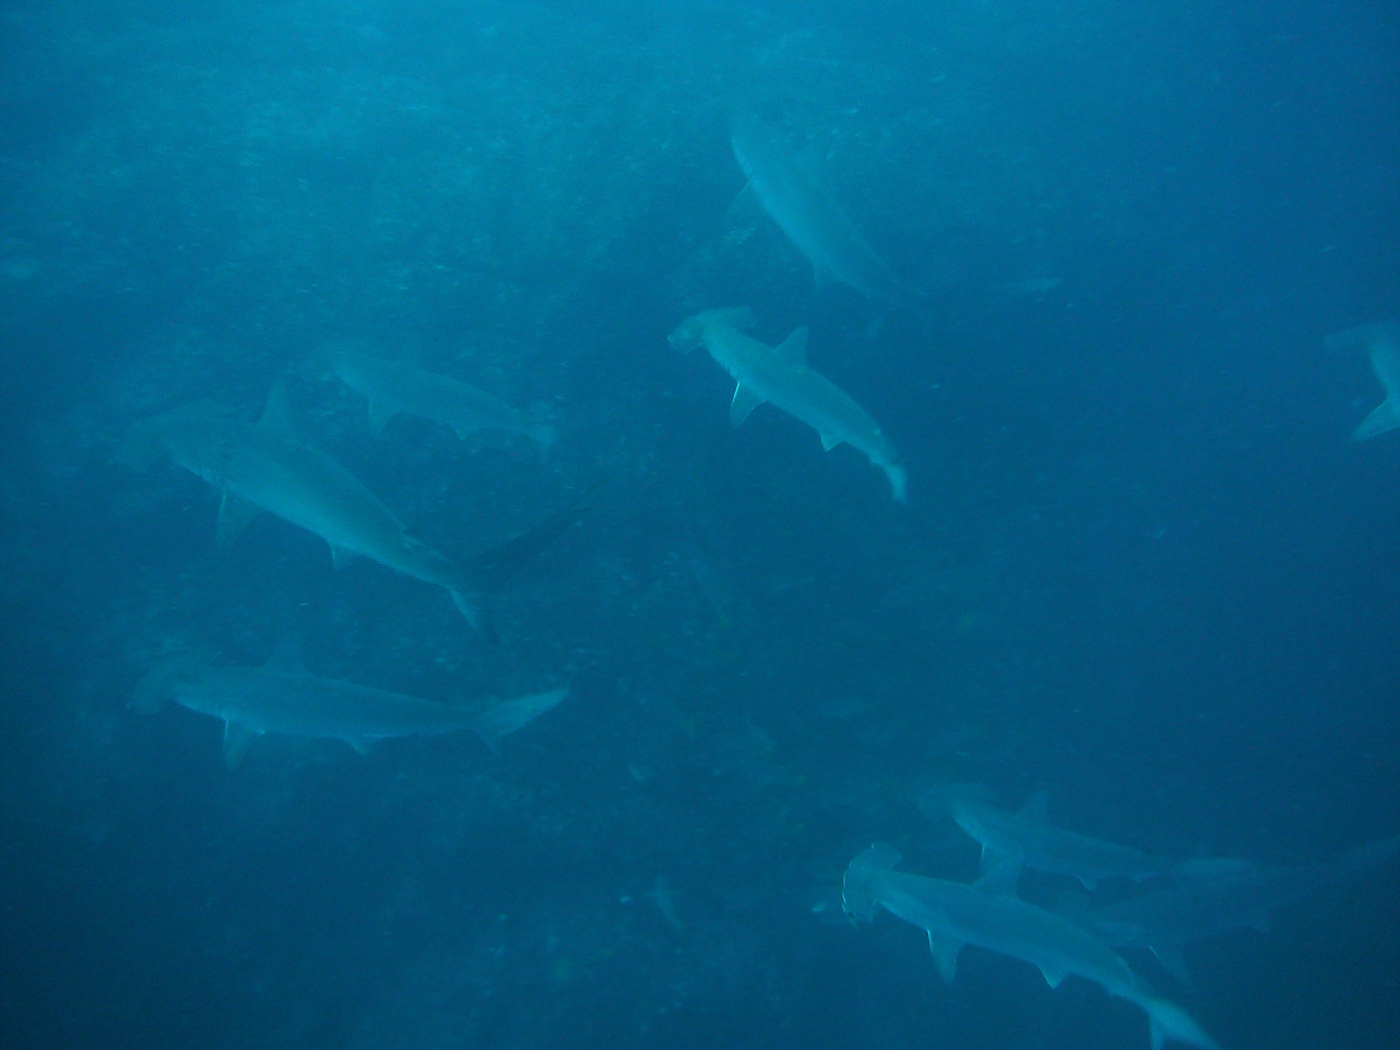 This is a small school of hammerheads